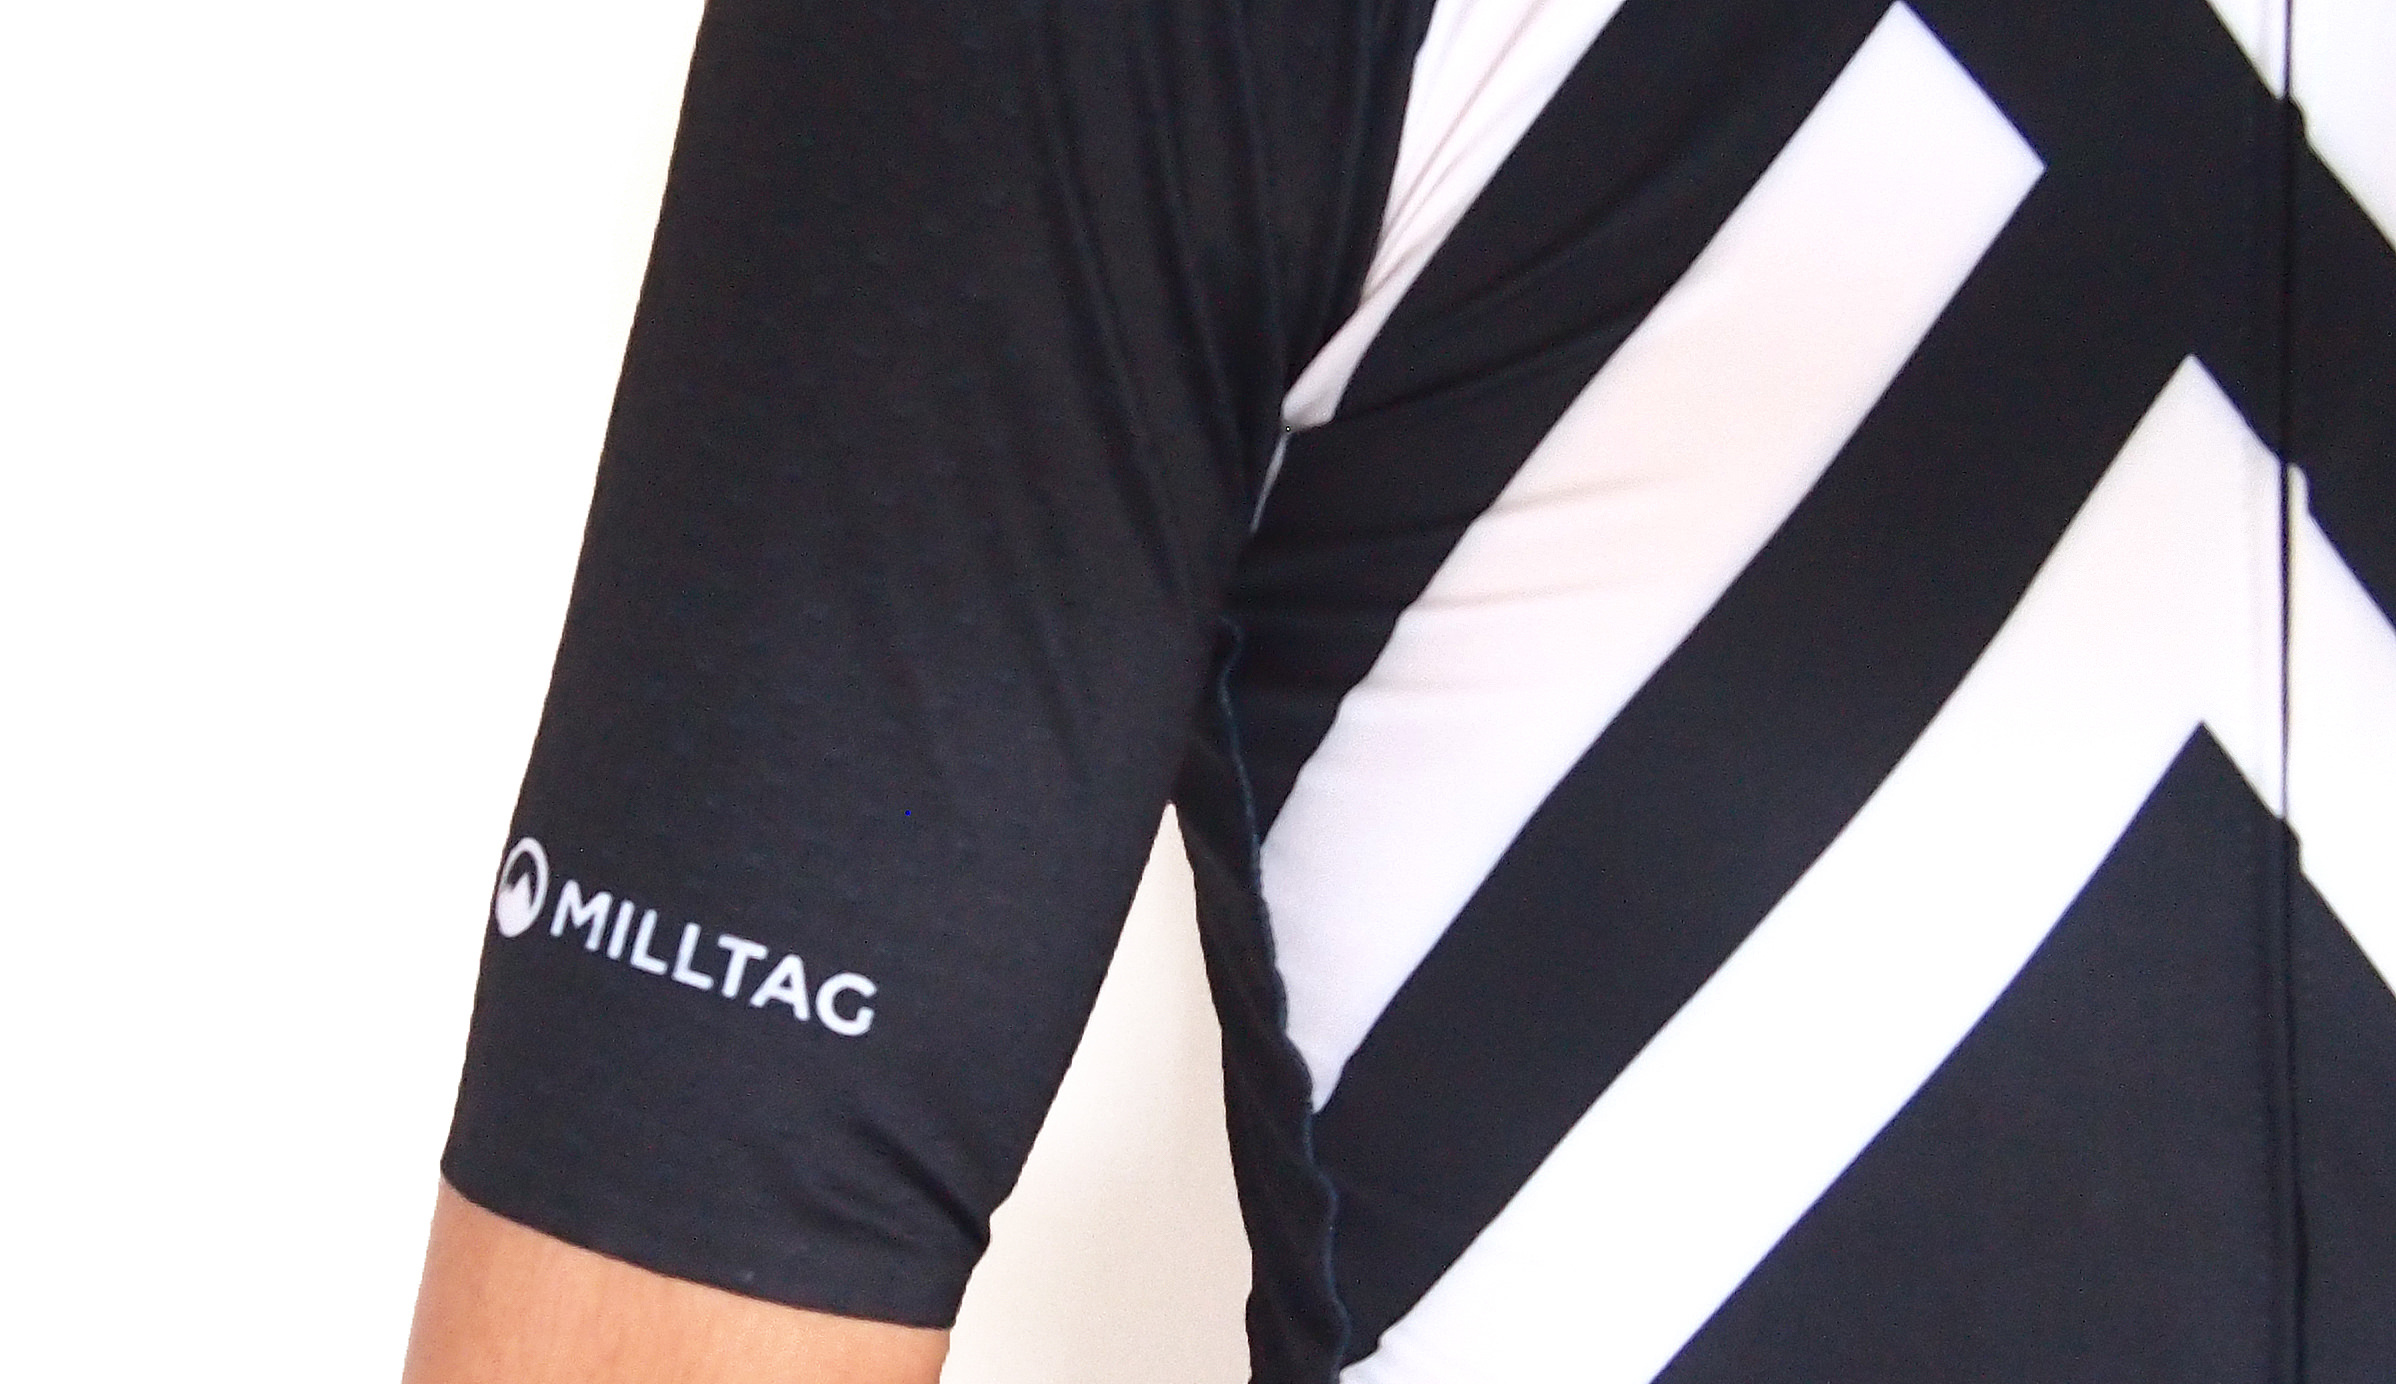 milltag sector men jersey 着用感